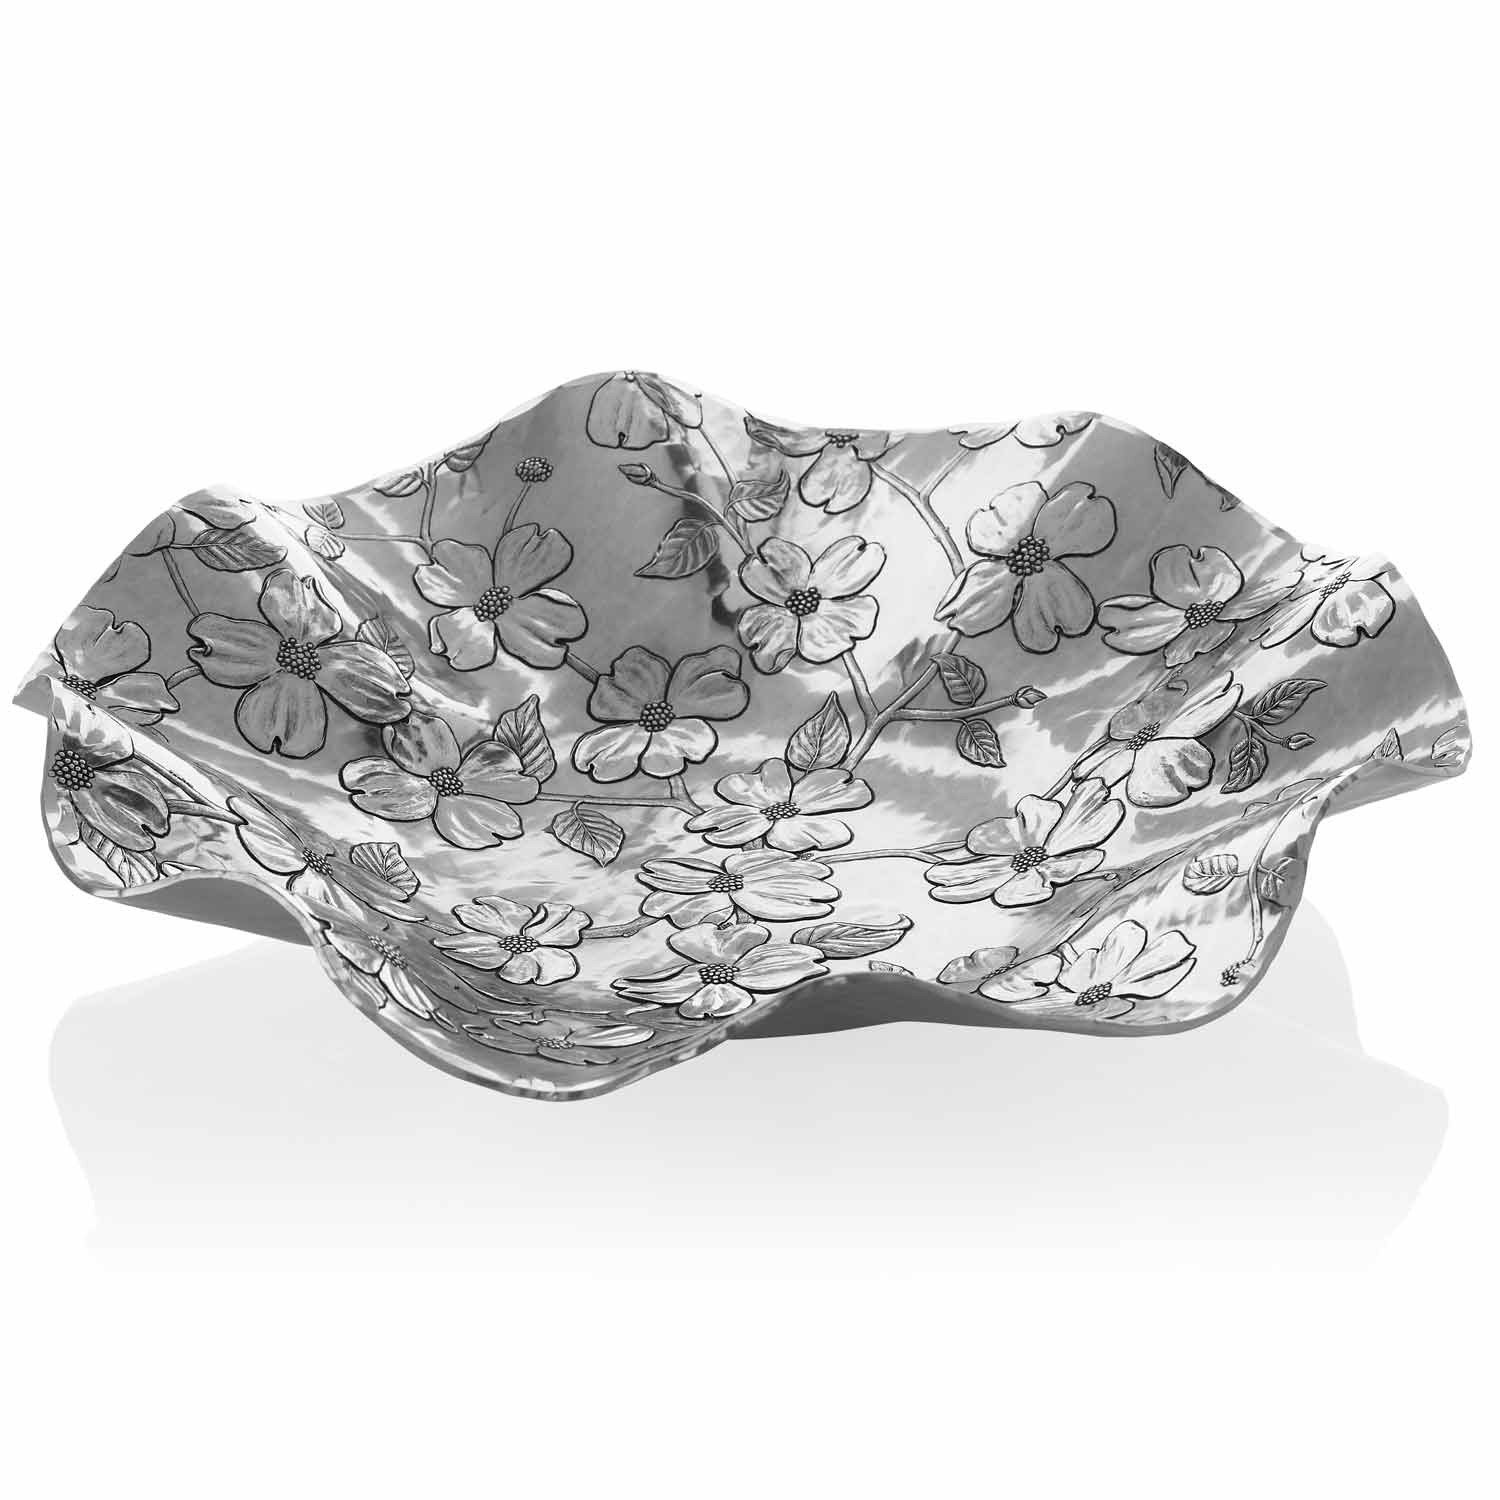 Wendell August Forge Dogwood St. Helena Bowl, Silver by Wendell August